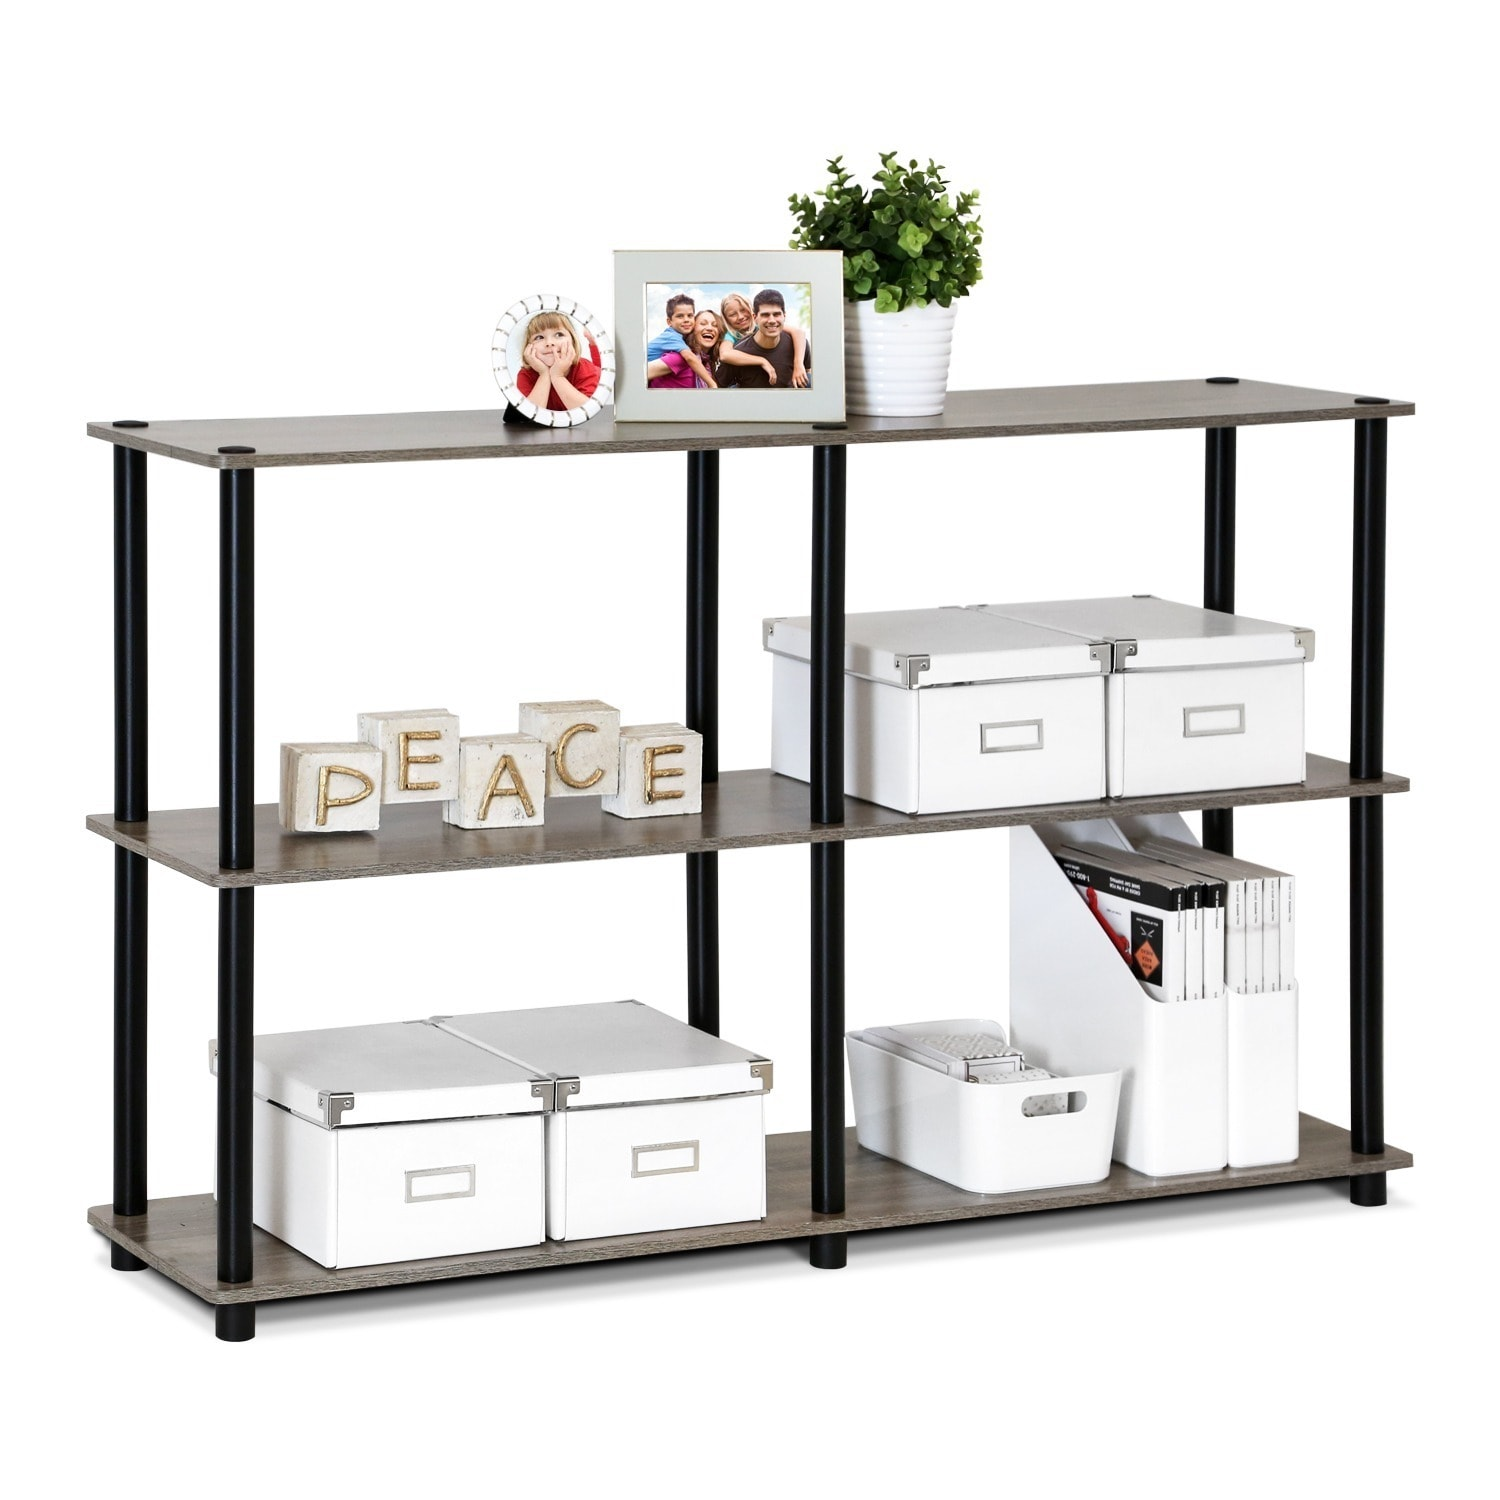 Shop Porch U0026 Den East Village St. Marks 3 Tier Double Size Storage Display  Rack   Free Shipping Today   Overstock.com   20340344